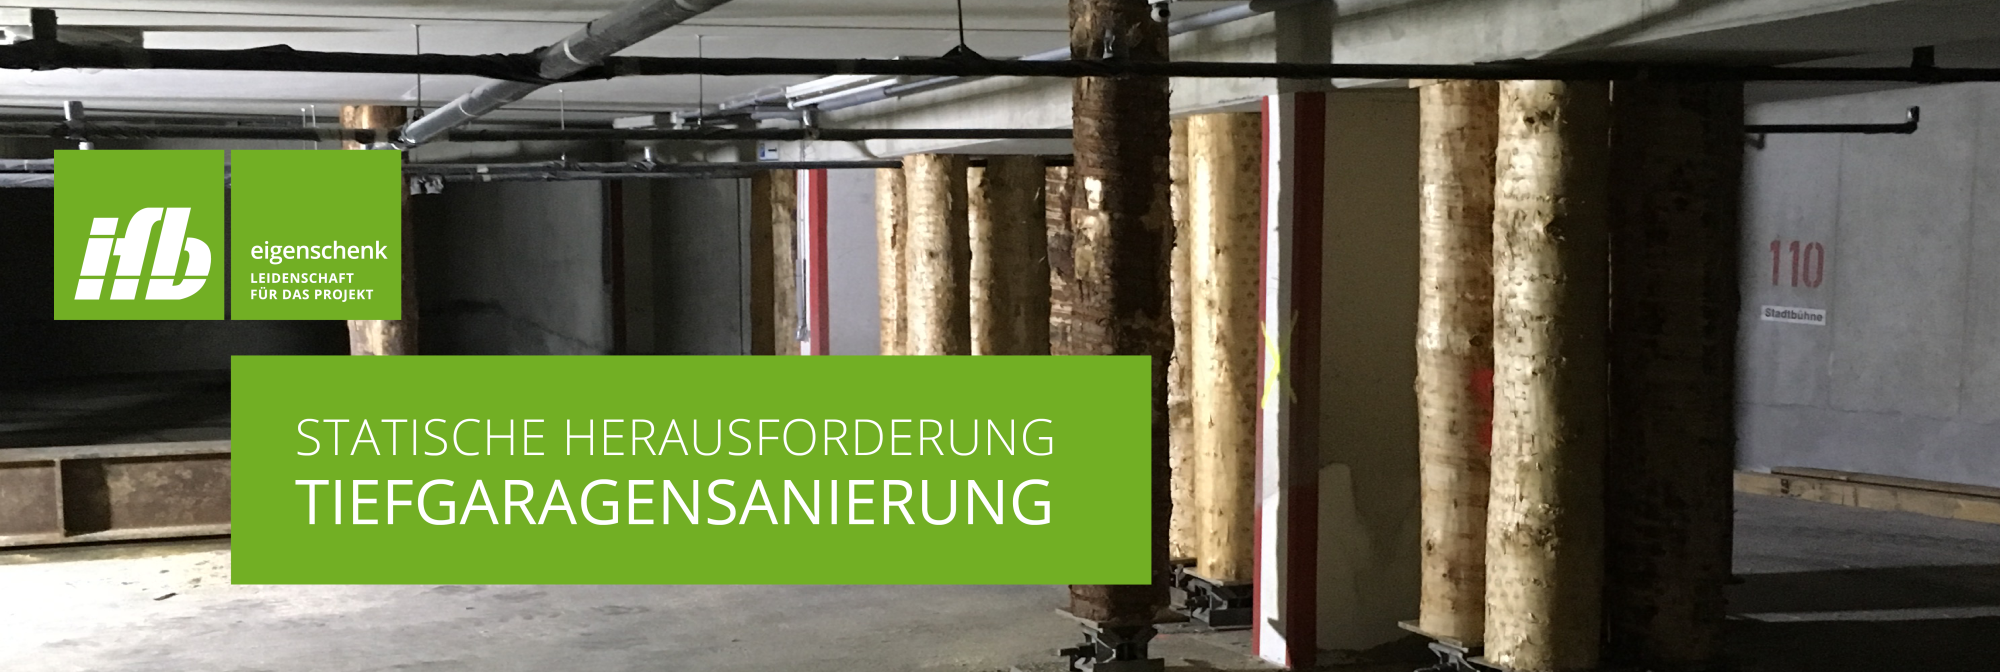 Header_Website_Tiefgaragensanierung